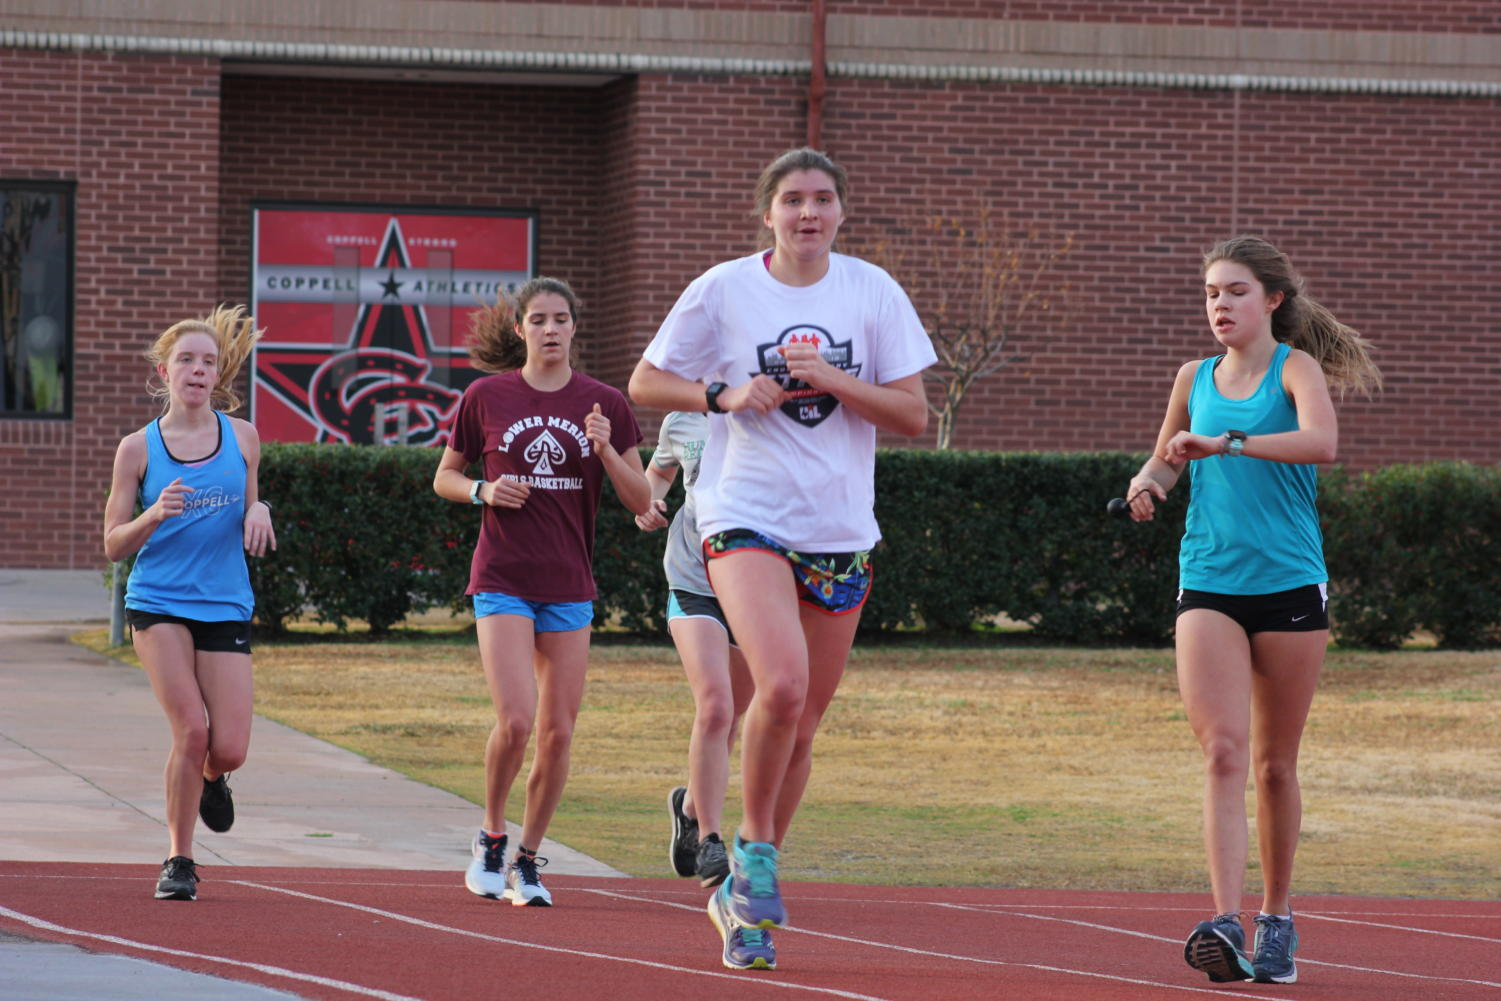 Coppell High School girls Cross Country team returns back to the track after their daily morning run on Dec. 4. Girls Cross Country recently won the 2018-2019 State Championship at Old Settlers Park in Round Rock Texas.